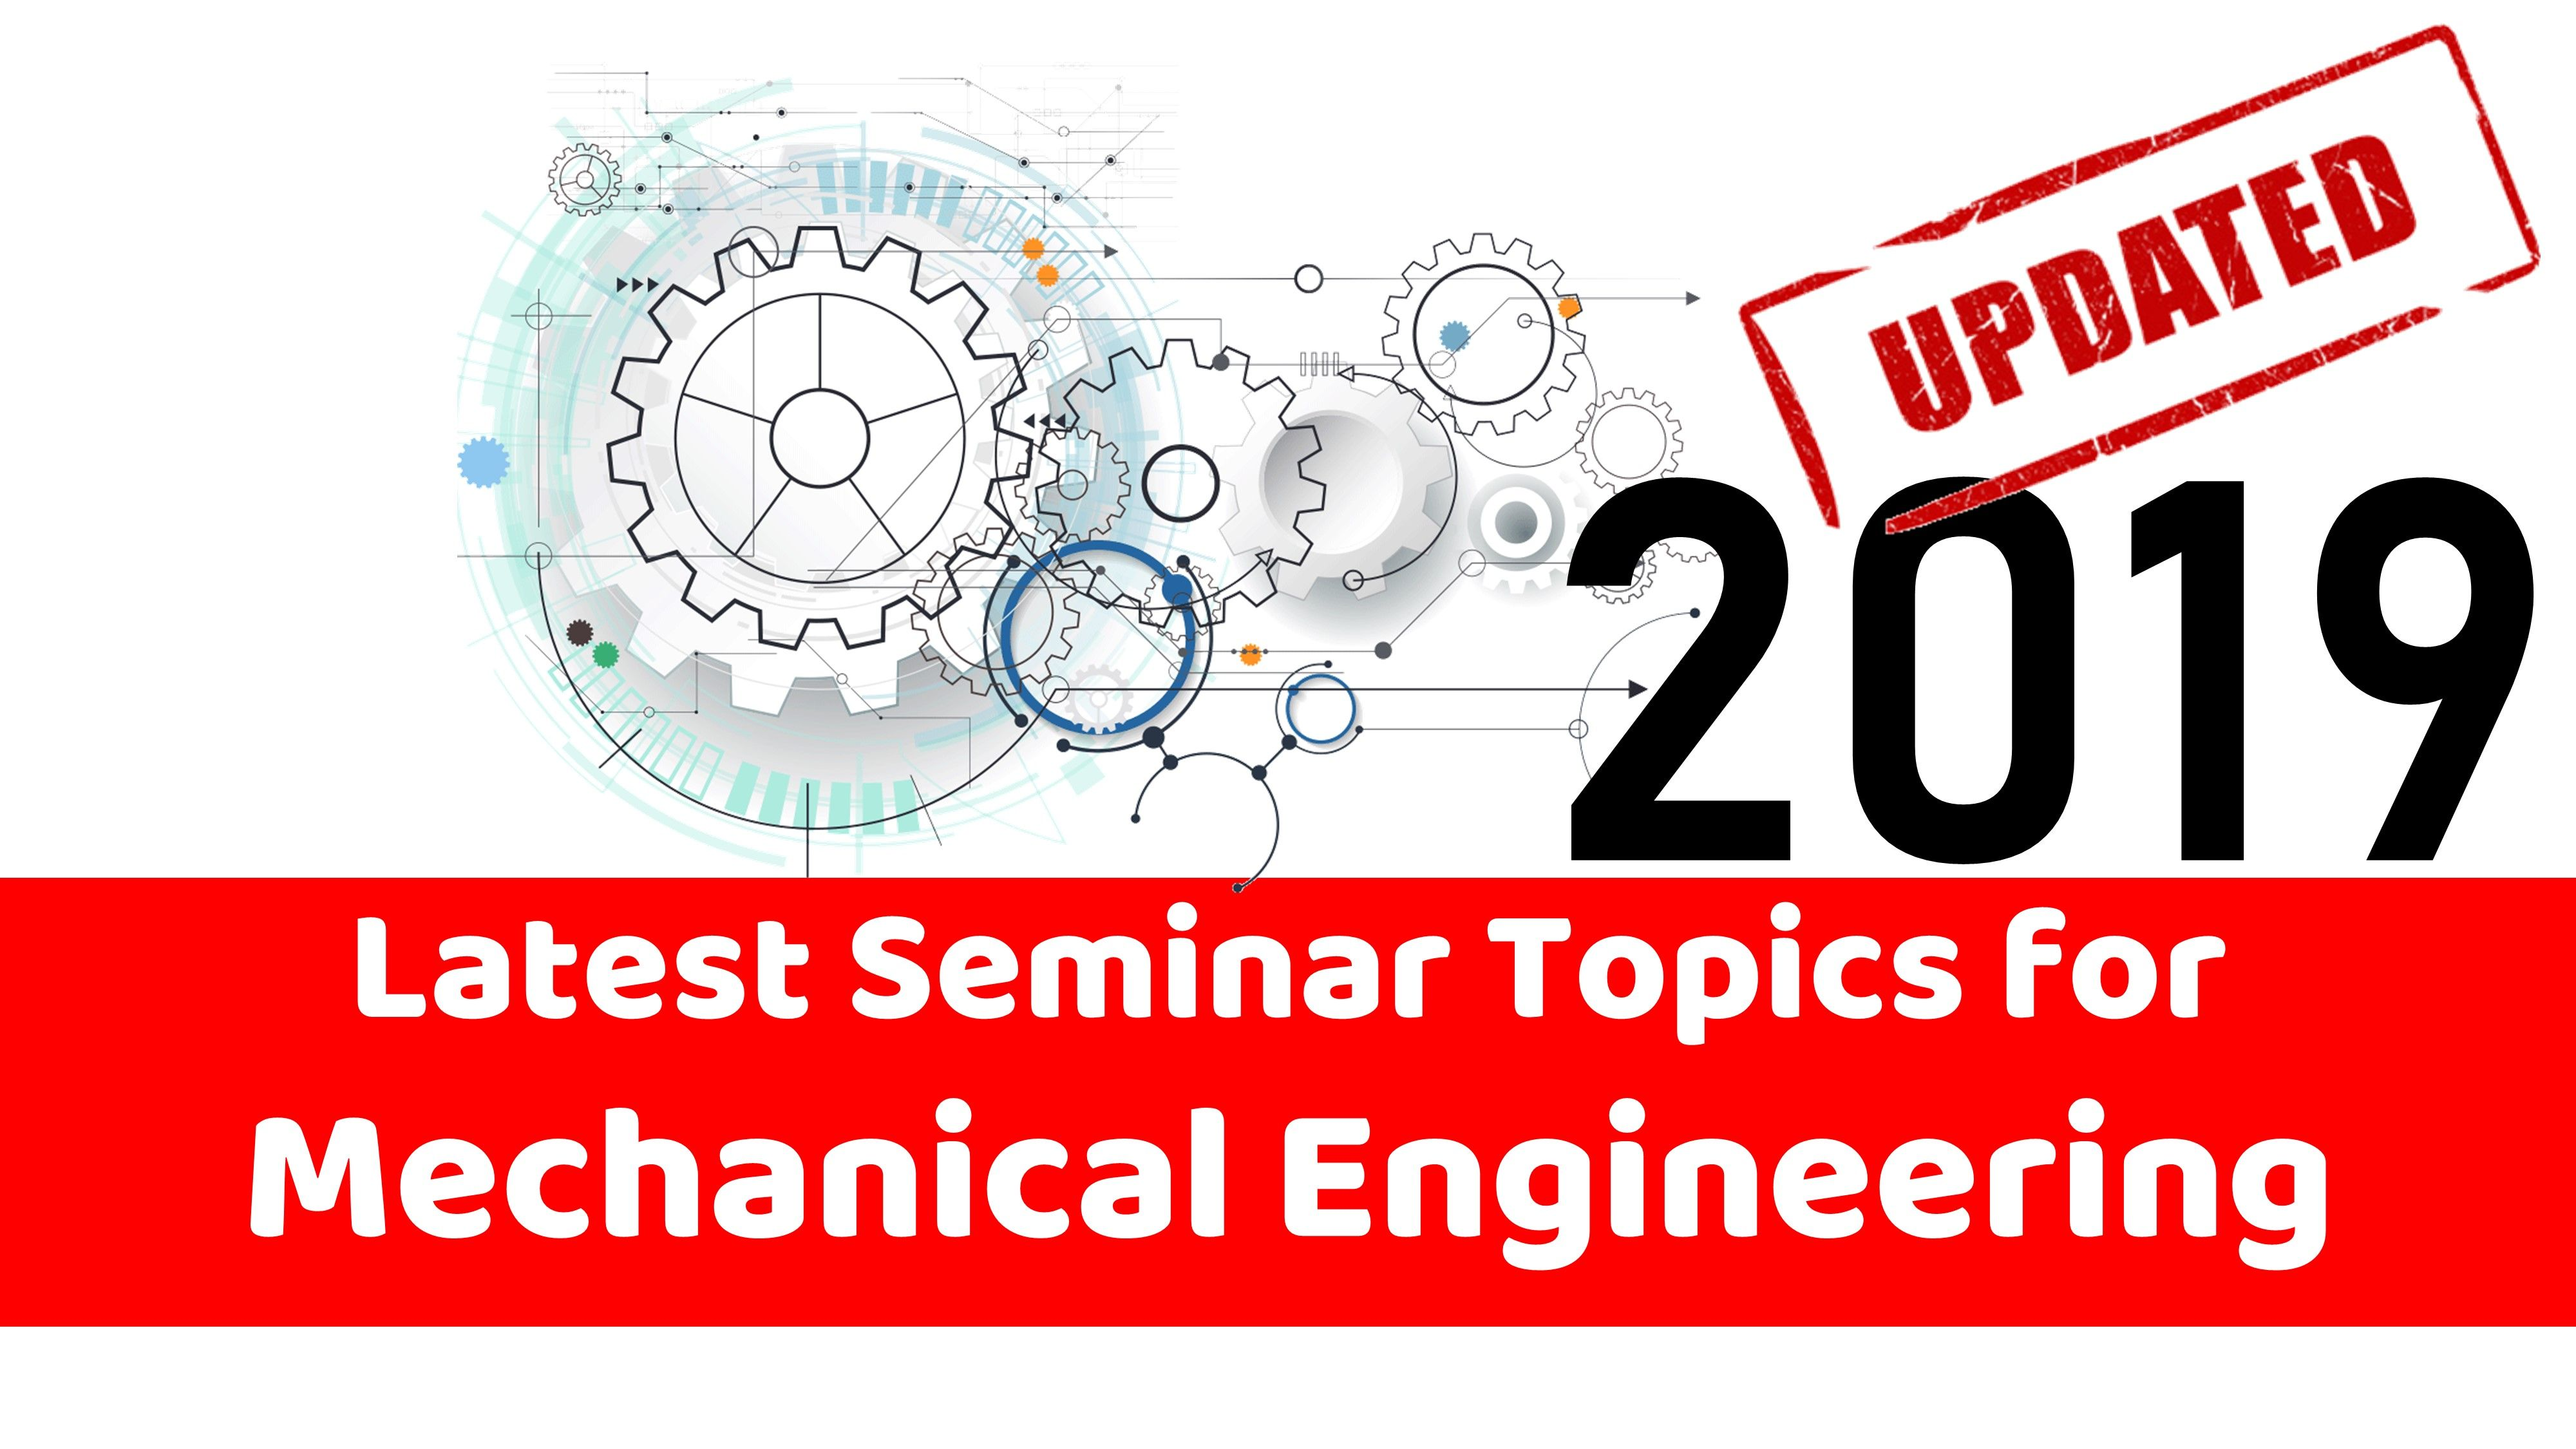 Latest Seminar Topics for Mechanical Engineering (Updated